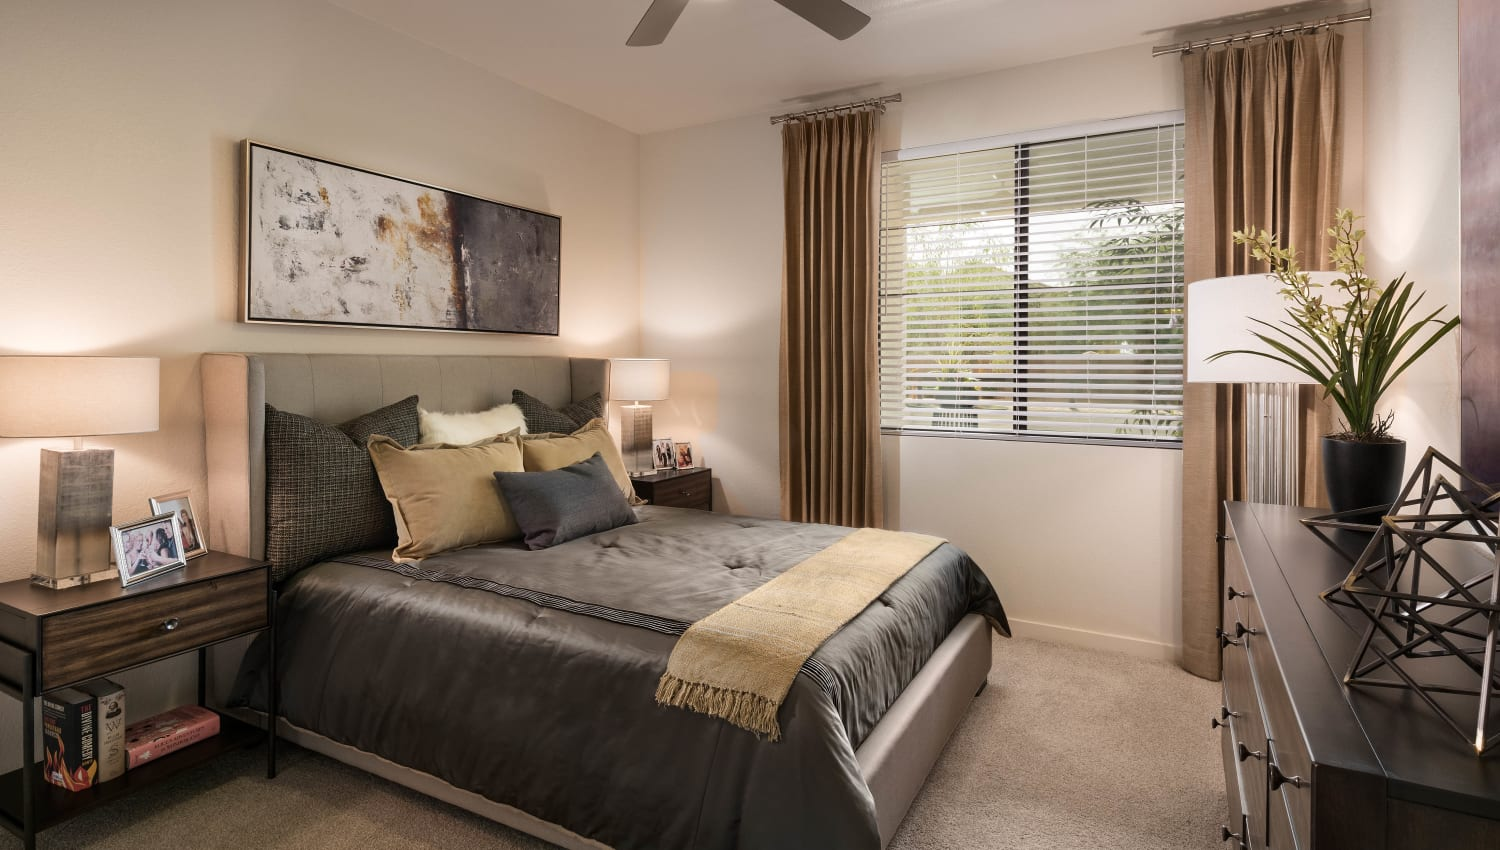 Well-furnished master bedroom with plush carpeting in a model home at Vistara at SanTan Village in Gilbert, Arizona